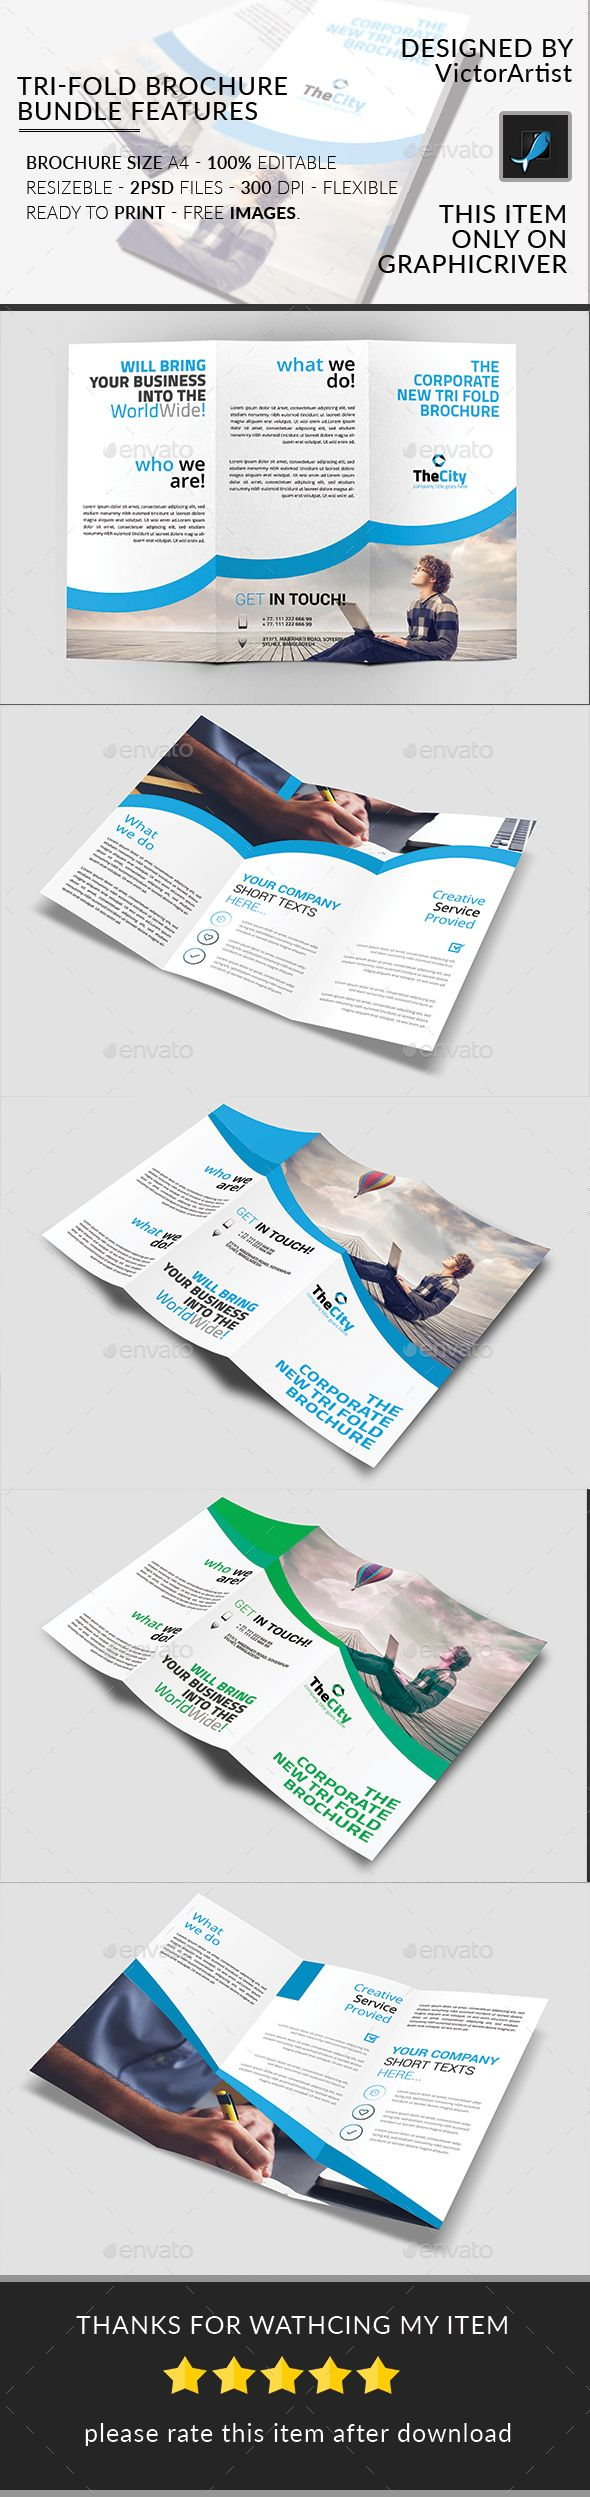 Tri-Fold Brochure Bundle - Brochures Print Templates Download here : https://graphicriver.net/item/trifold-brochure-bundle/19474280?s_rank=26&ref=Al-fatih